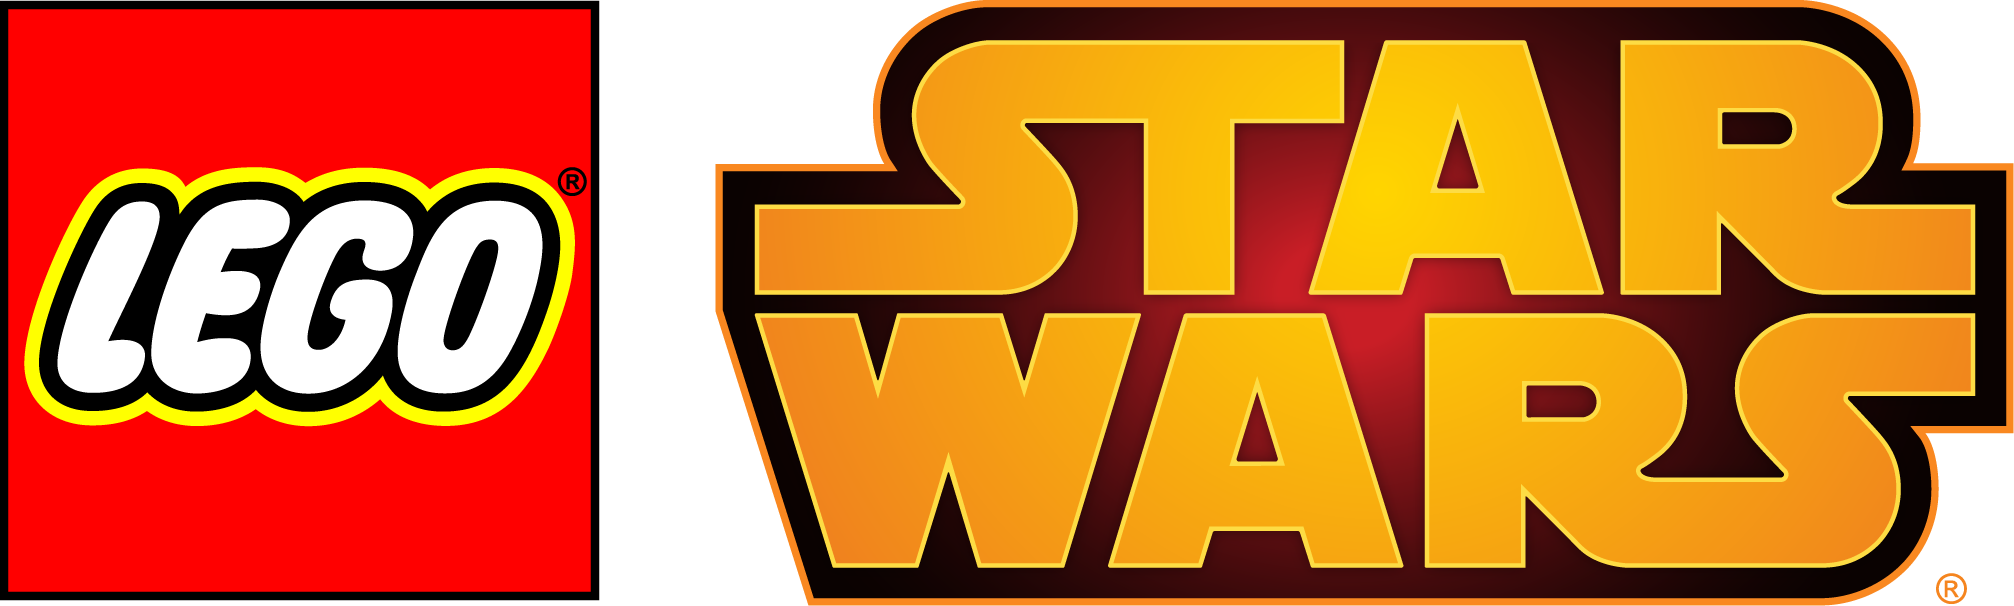 Star wars logo clipart jpg library library 5 New Lego Star Wars Sets Revealed? - Star Wars News Net | Star Wars ... jpg library library